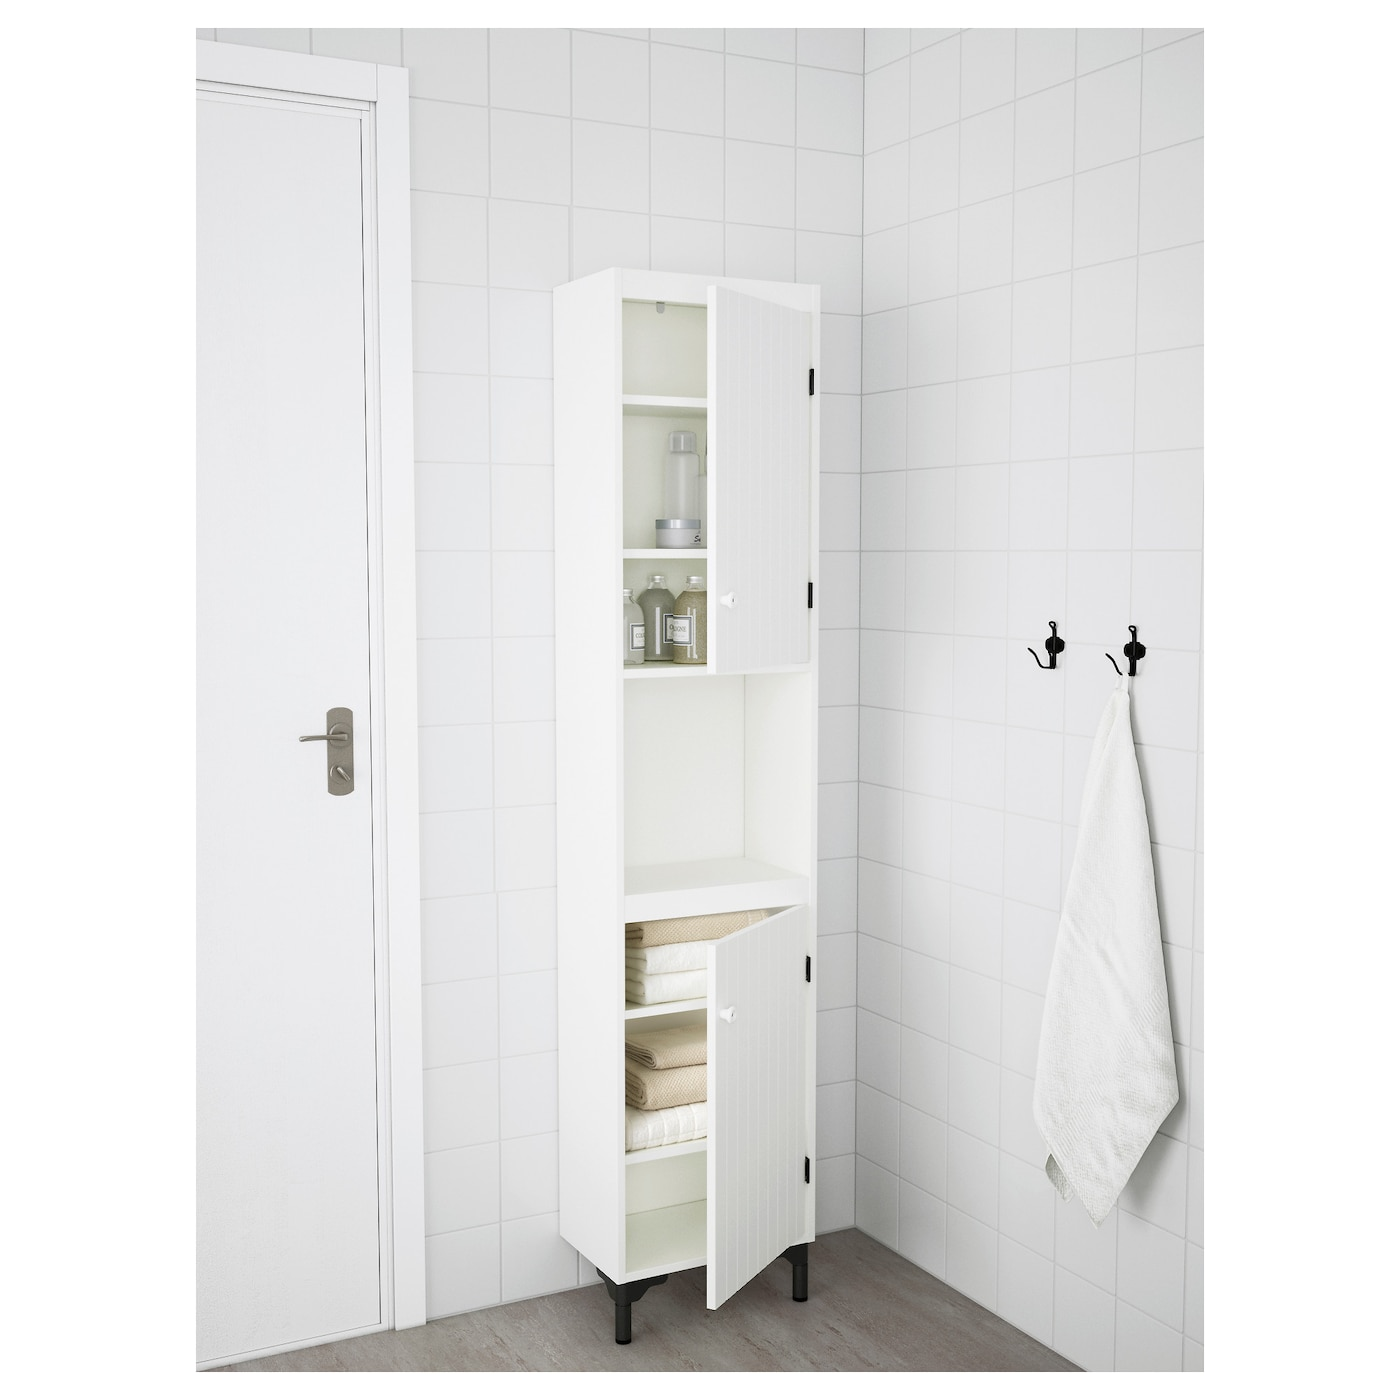 ikea bathroom cabinet doors silver 197 n high cabinet with 2 doors white 40 x 25 x 172 cm 17521